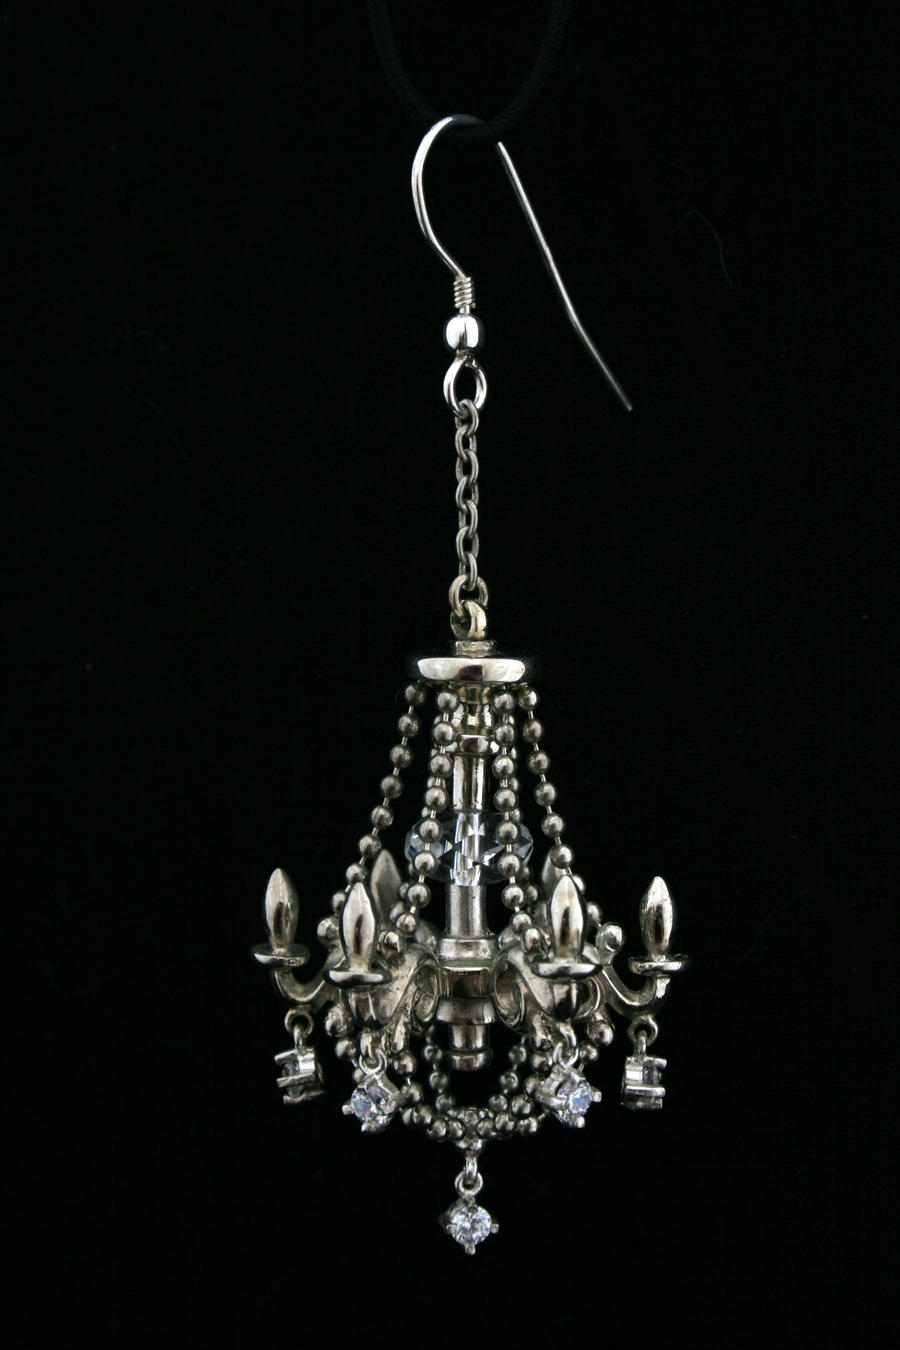 Chandelier Earring 1 By W L G On Deviantart